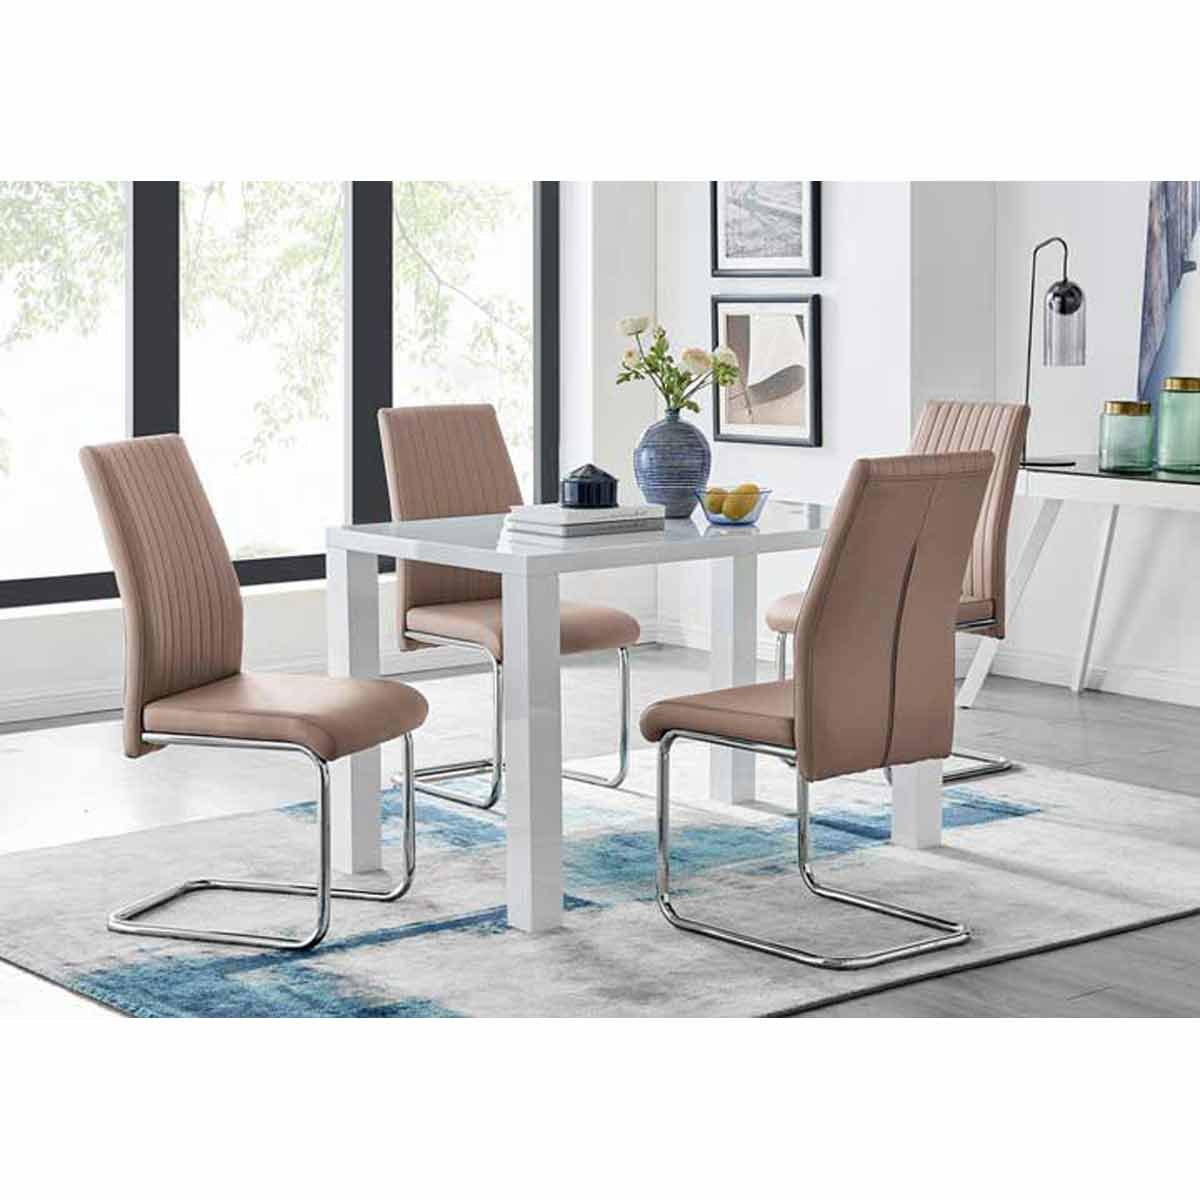 Furniture Box Pivero White High Gloss Dining Table And 4 Cappuccino Grey Lorenzo Chairs Set